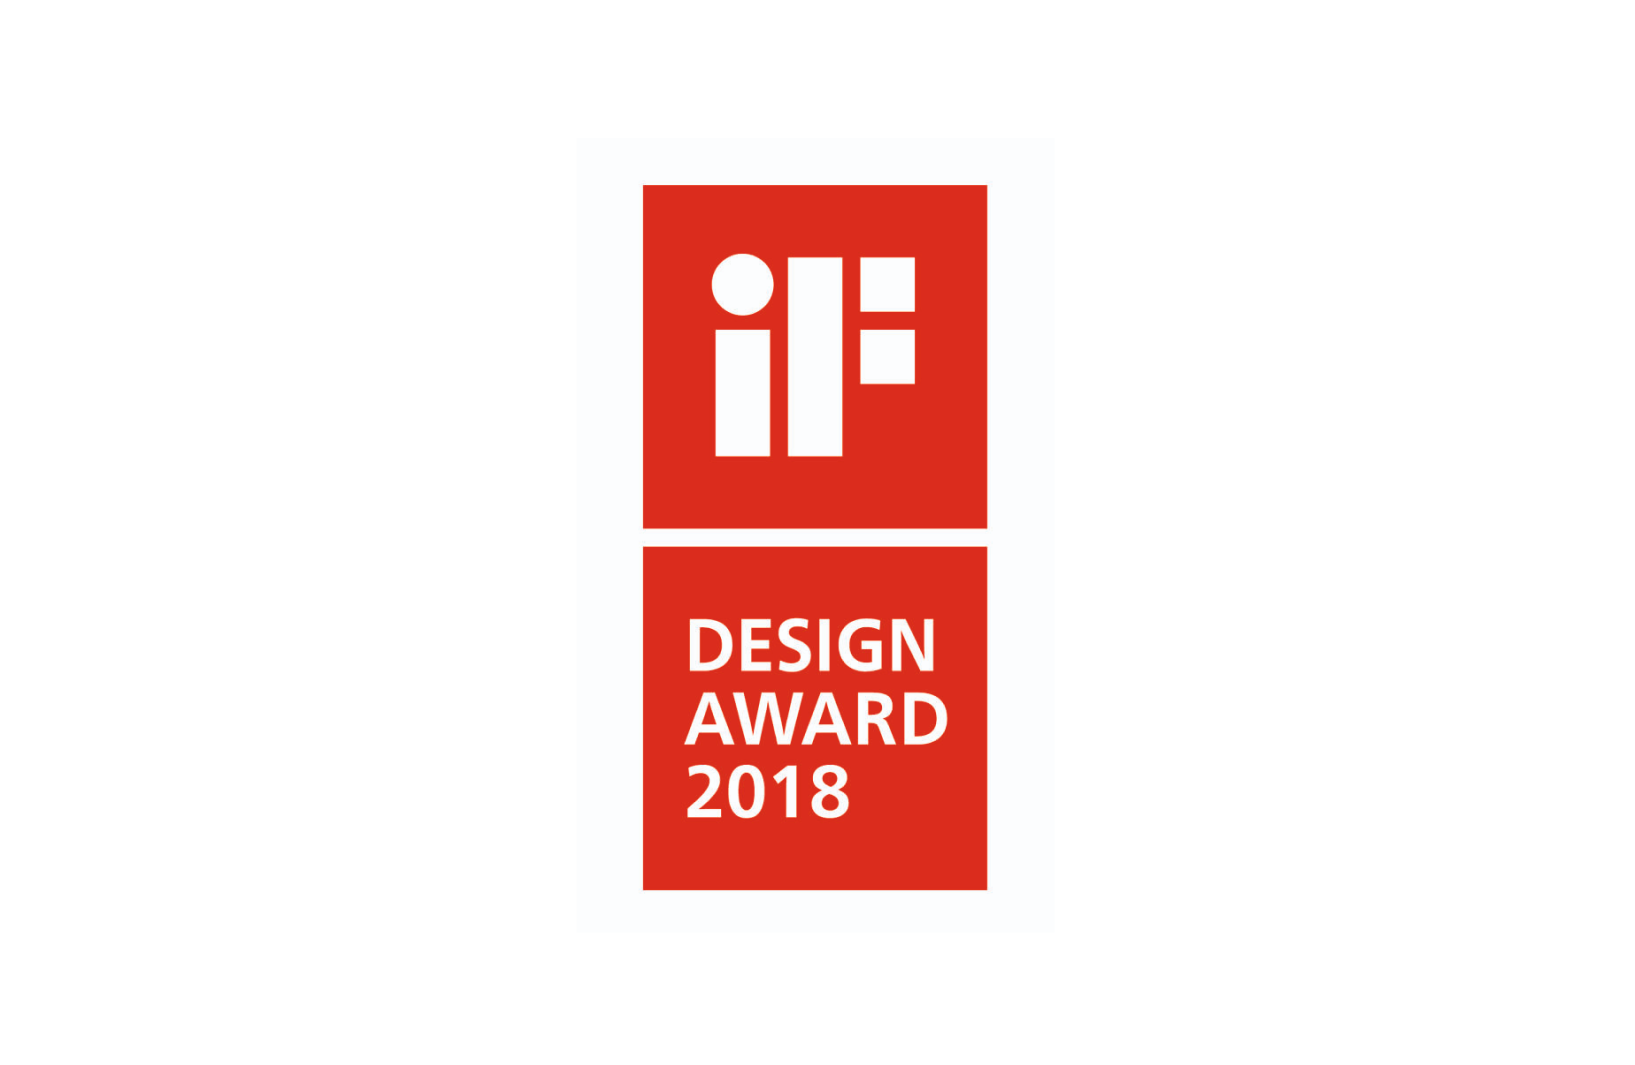 IF Design Award 2018 - In house designer awarded for Smart Remote in the Product Design category. Product design by eliumstudio.